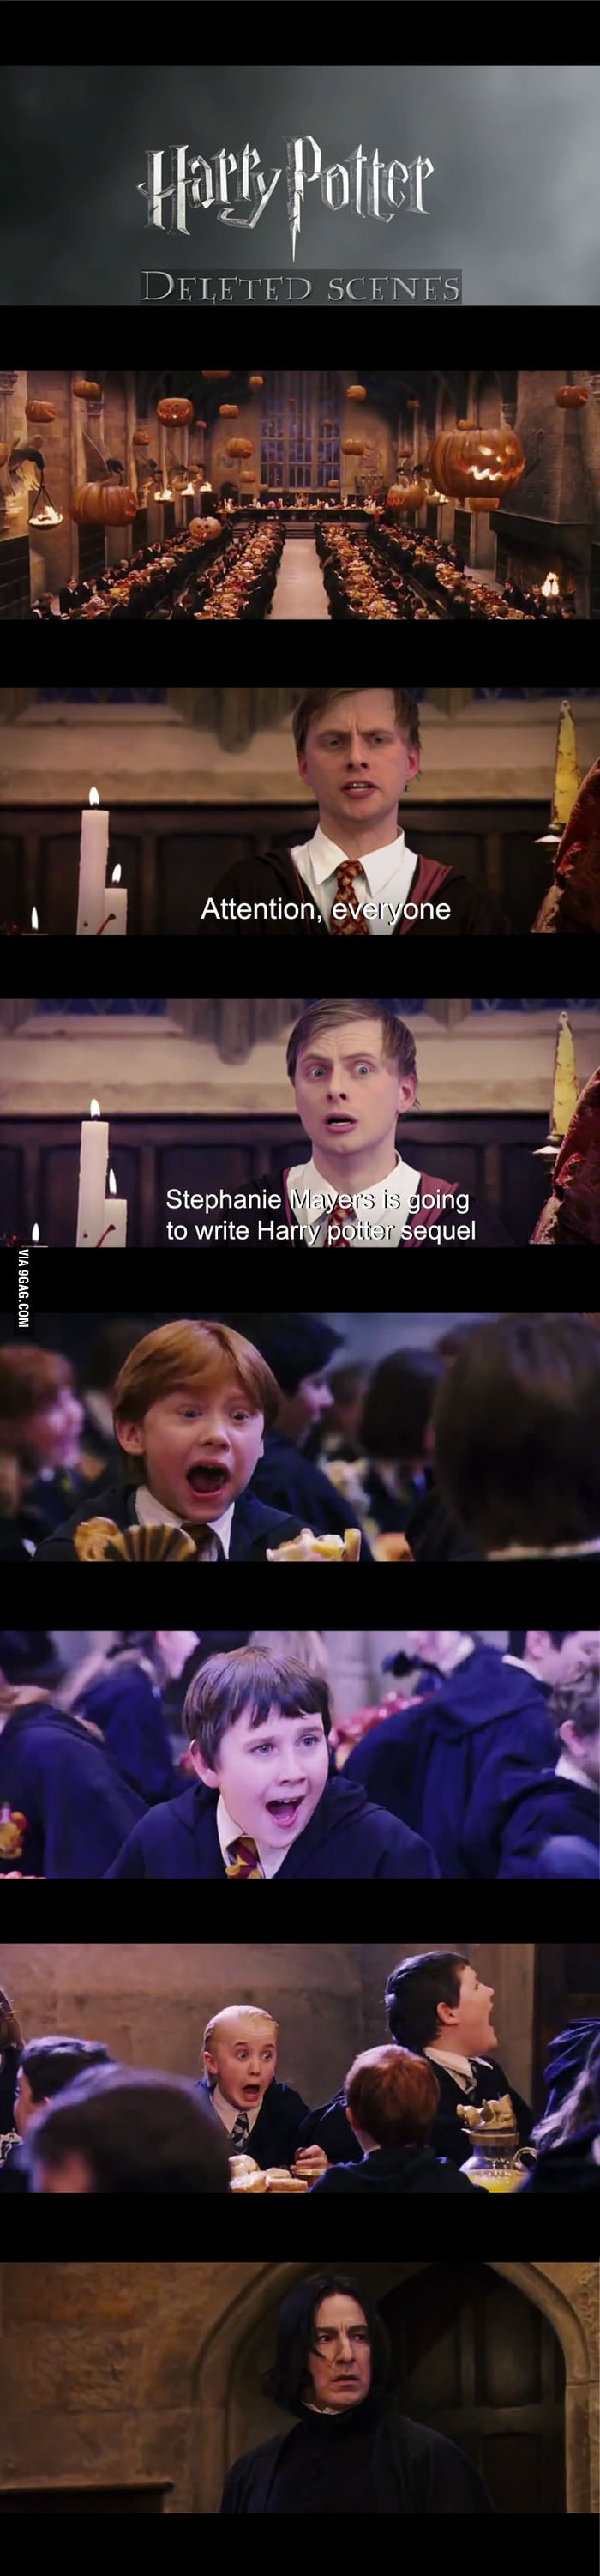 Deleted Scenes from Harry Potter